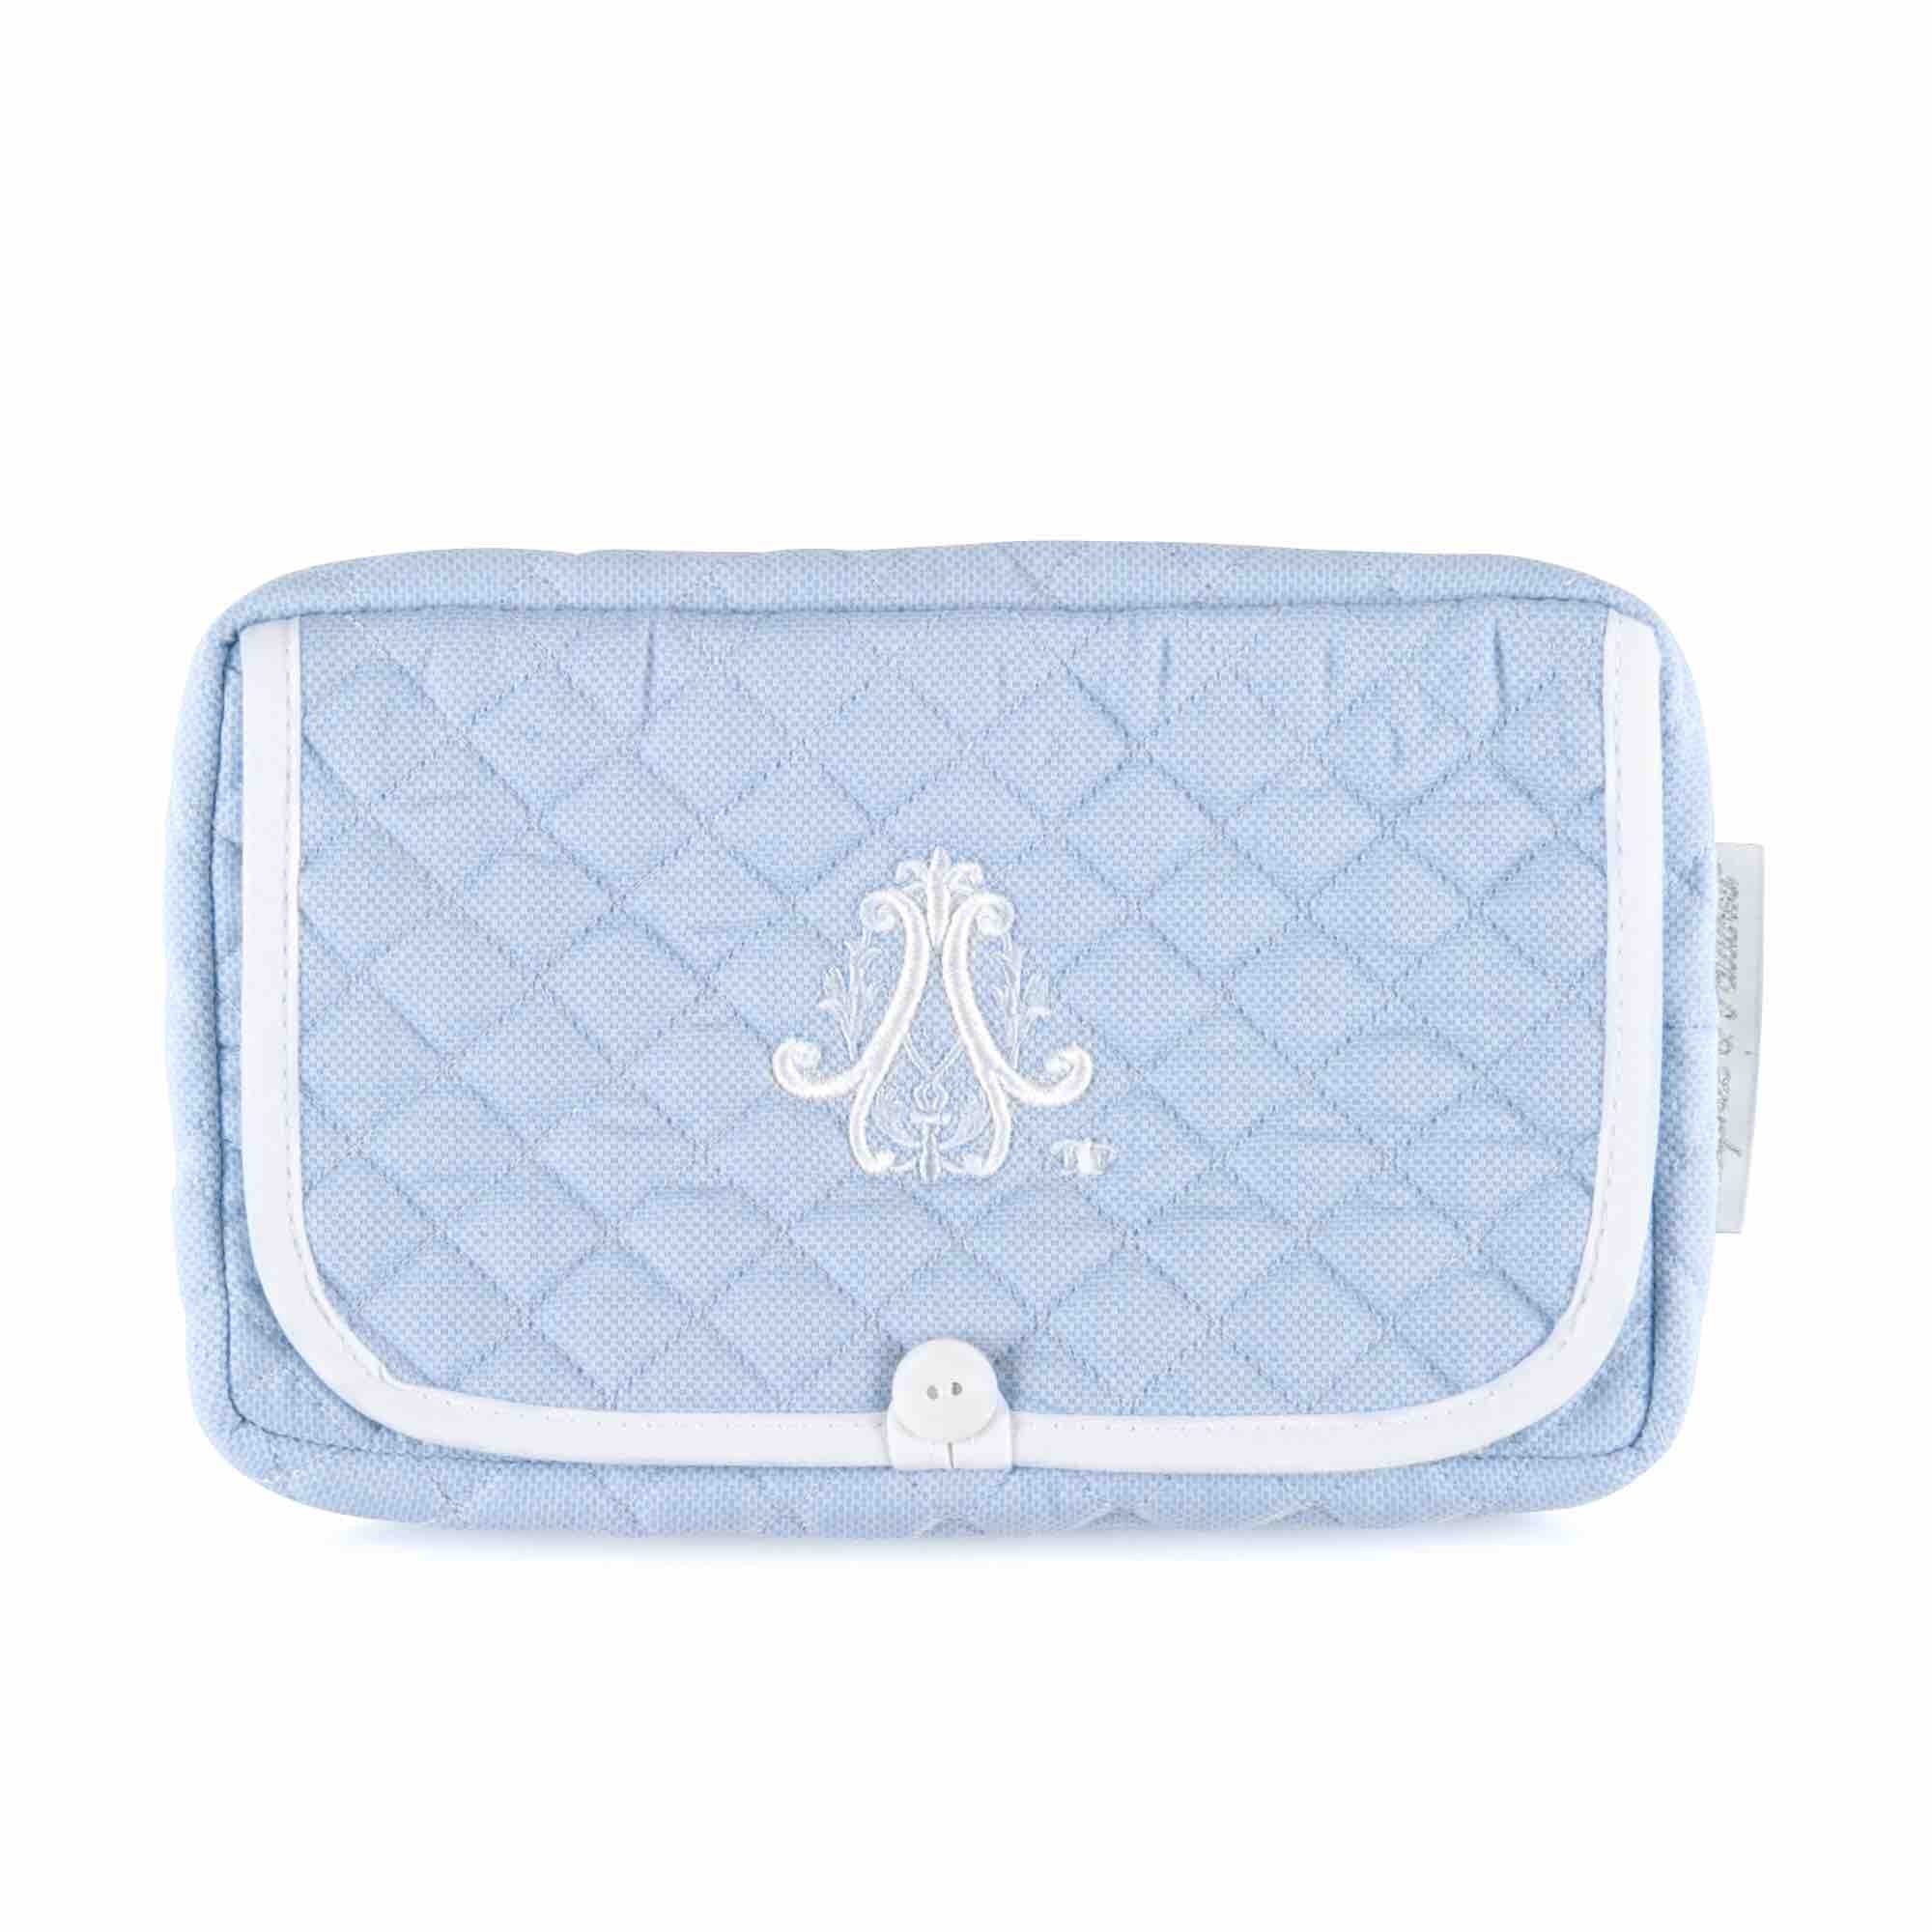 Theophile & Patachou Travel Baby Wipes Cover - Indigo